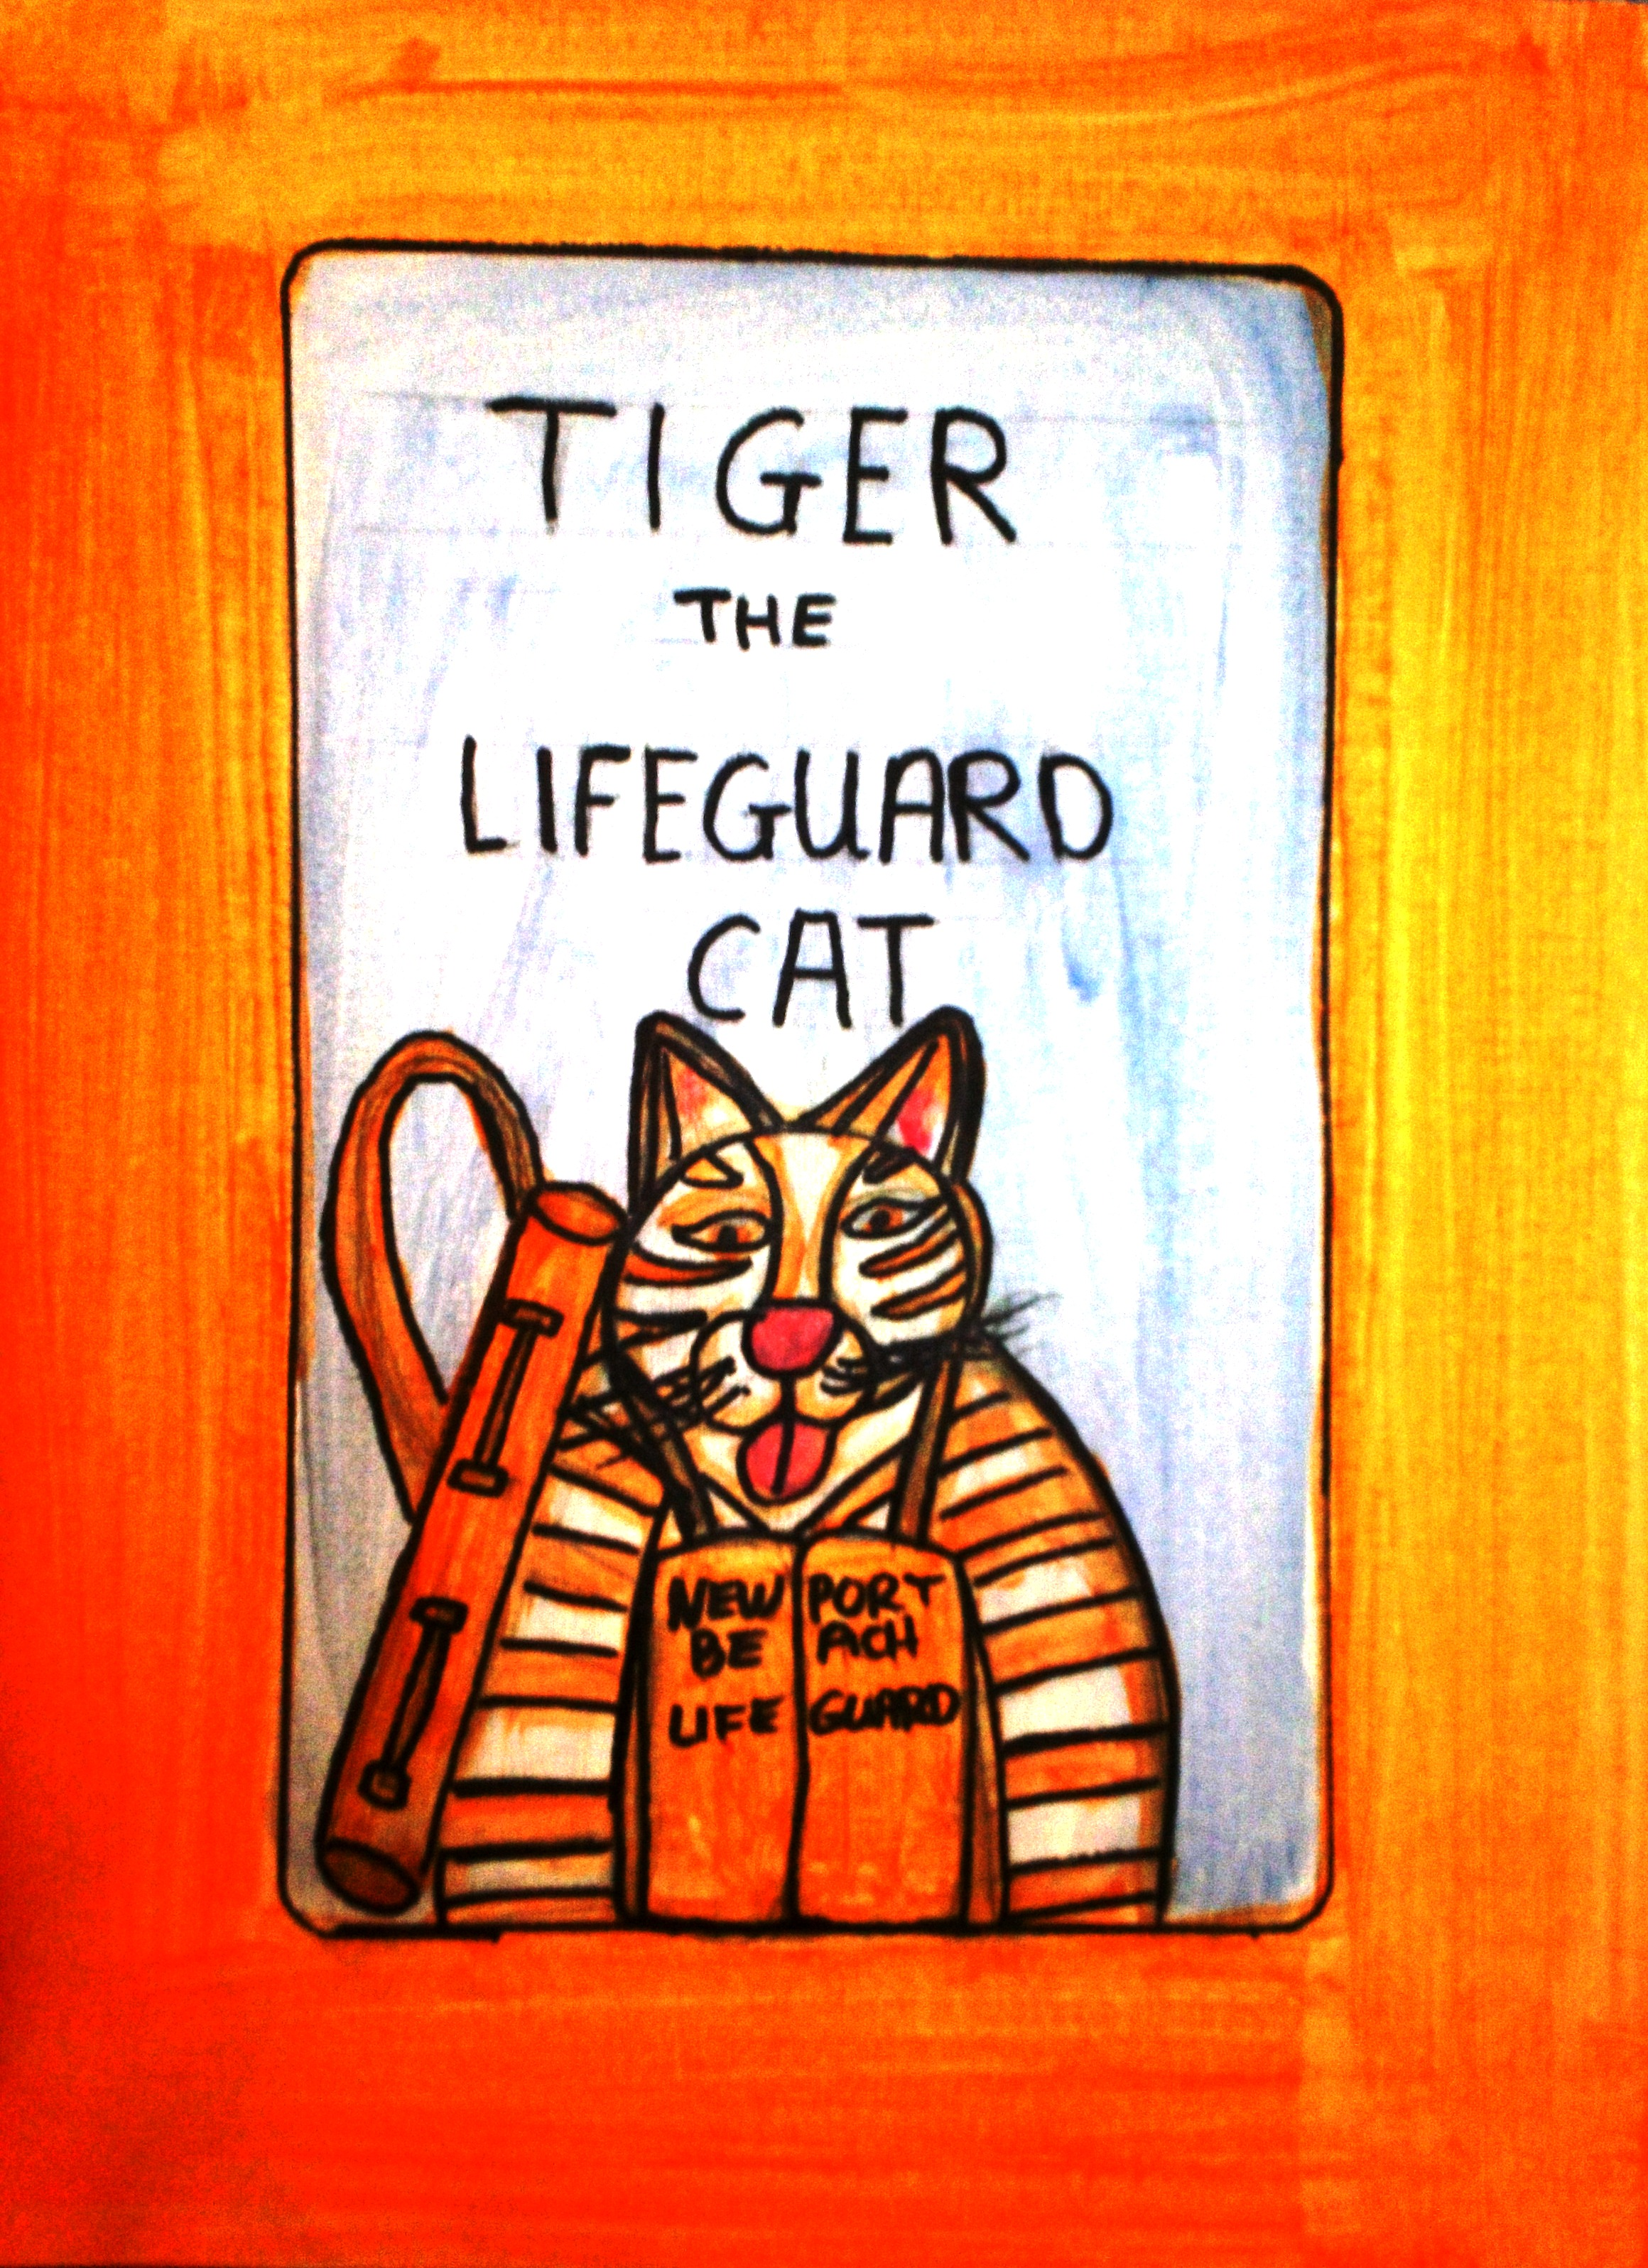 Tiger the Lifeguard Cat